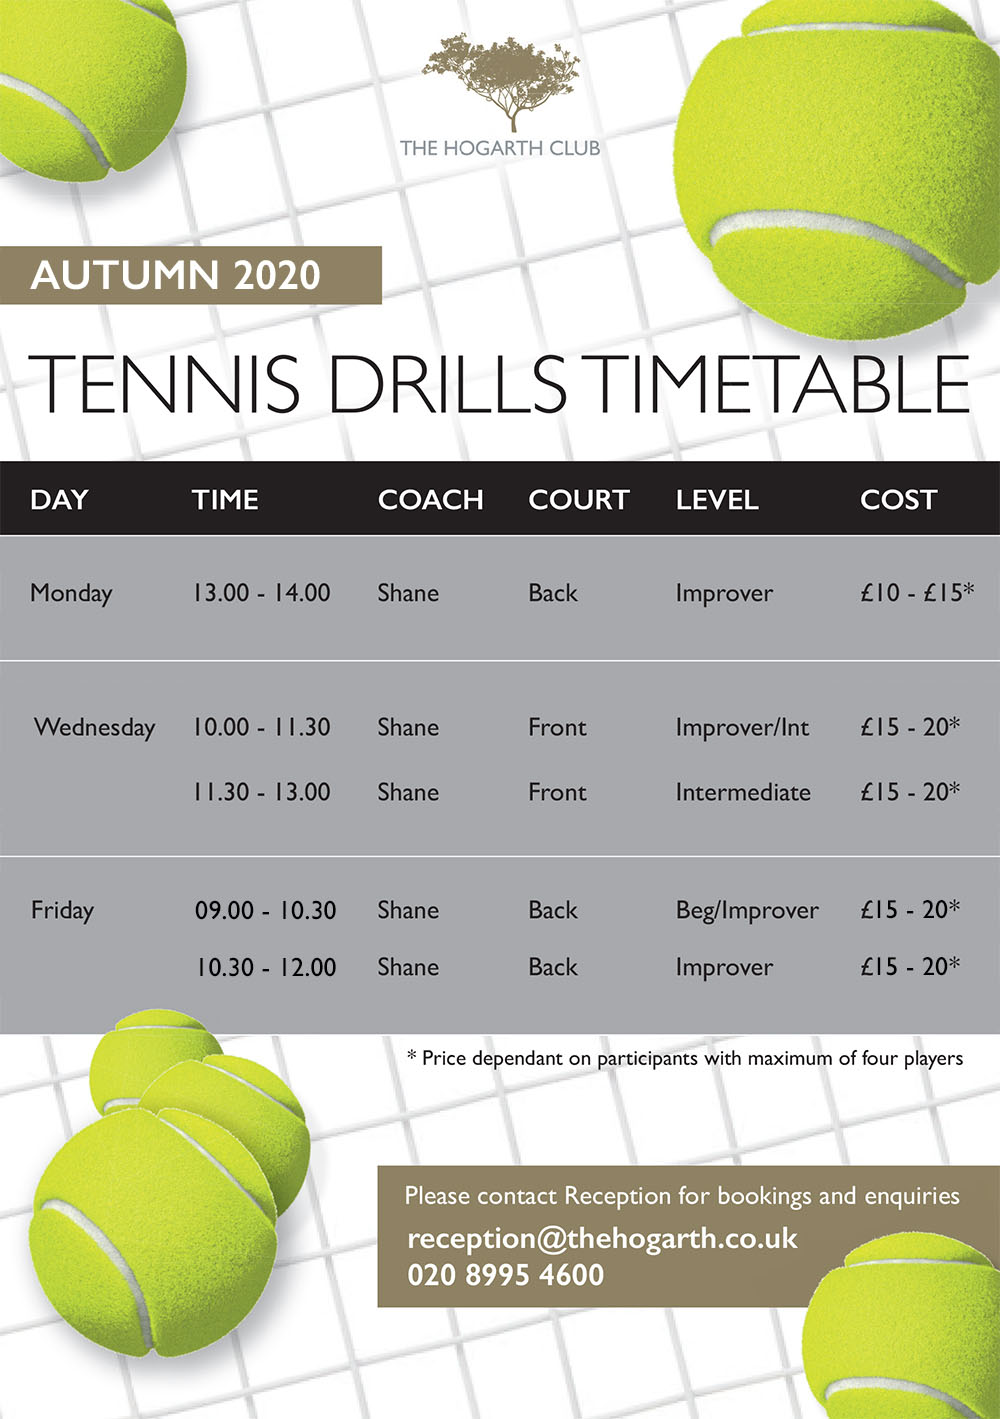 tennis drills timetable 2020 hogarth